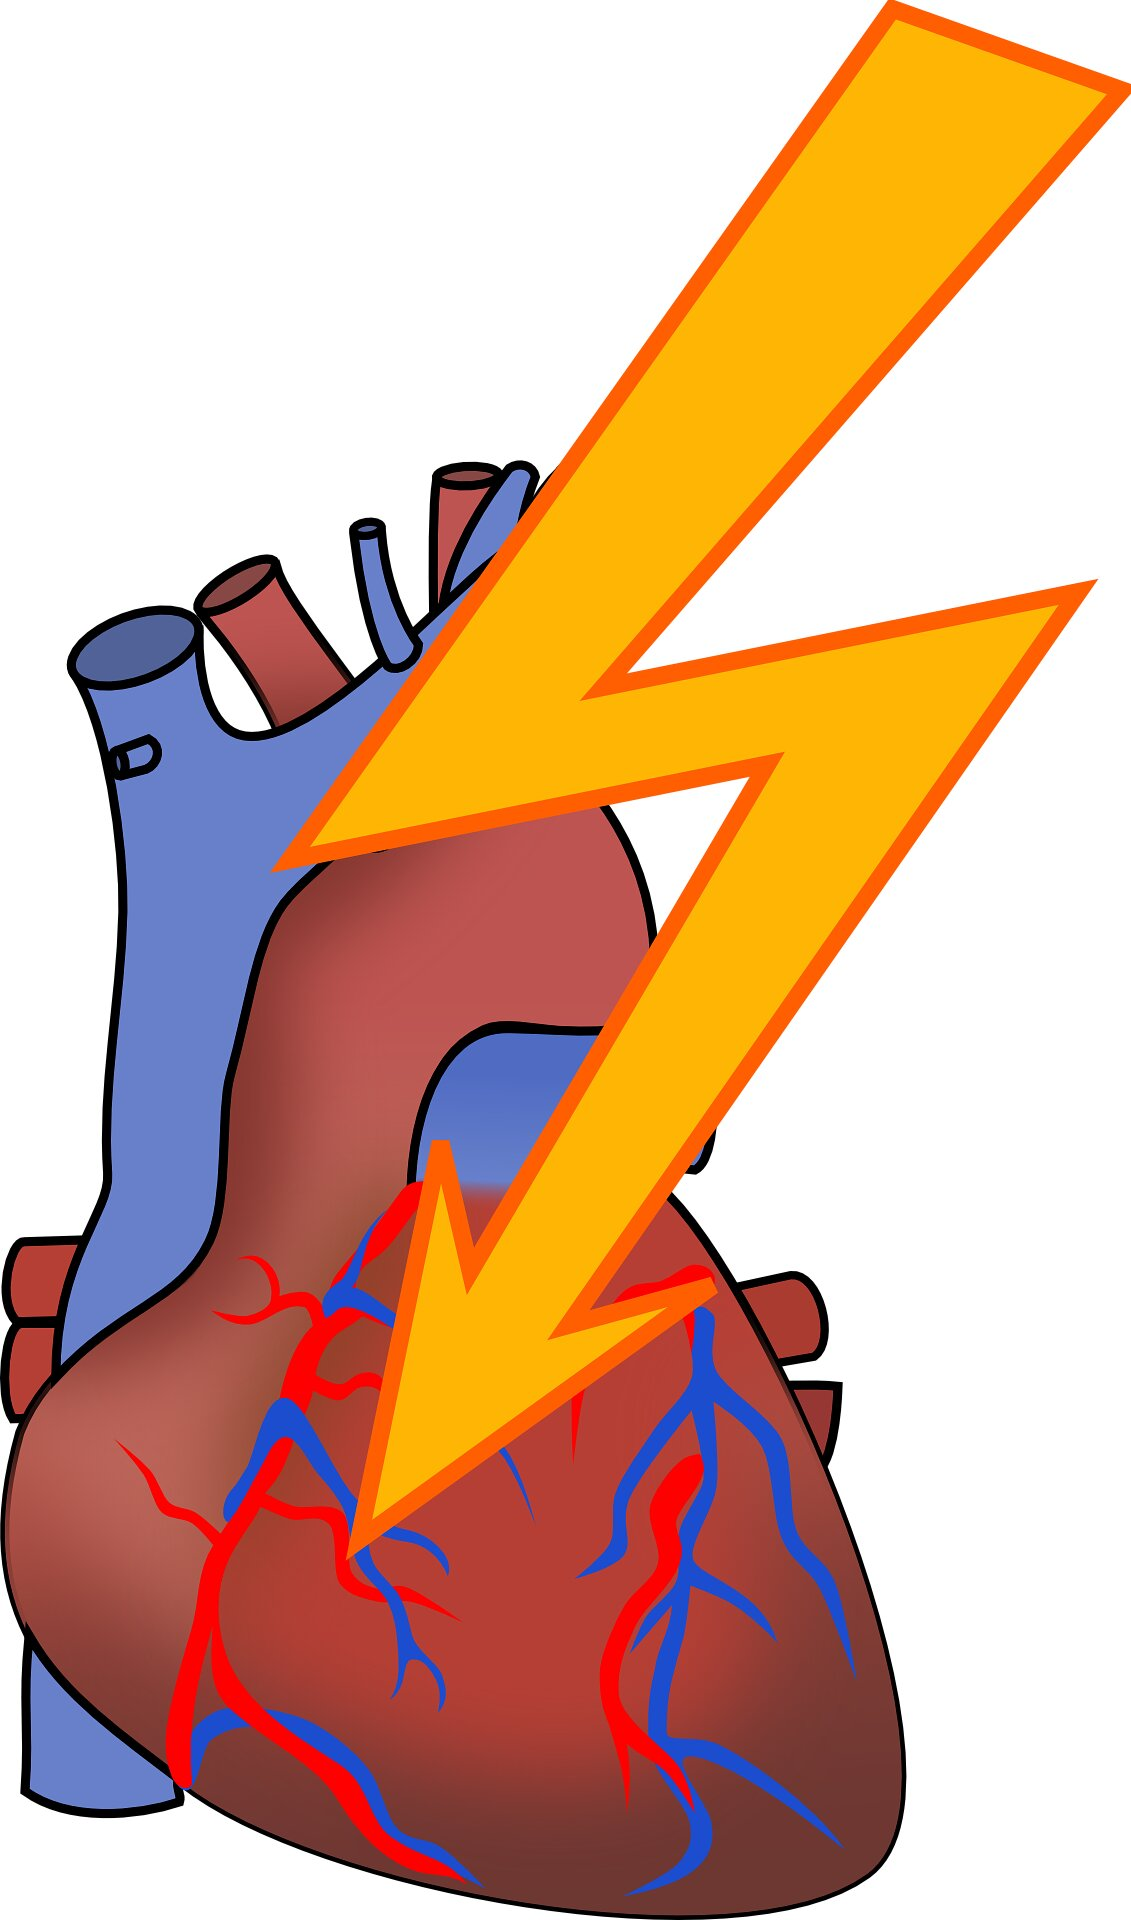 Heart cells cozy up to prevent deadly arrhythmias